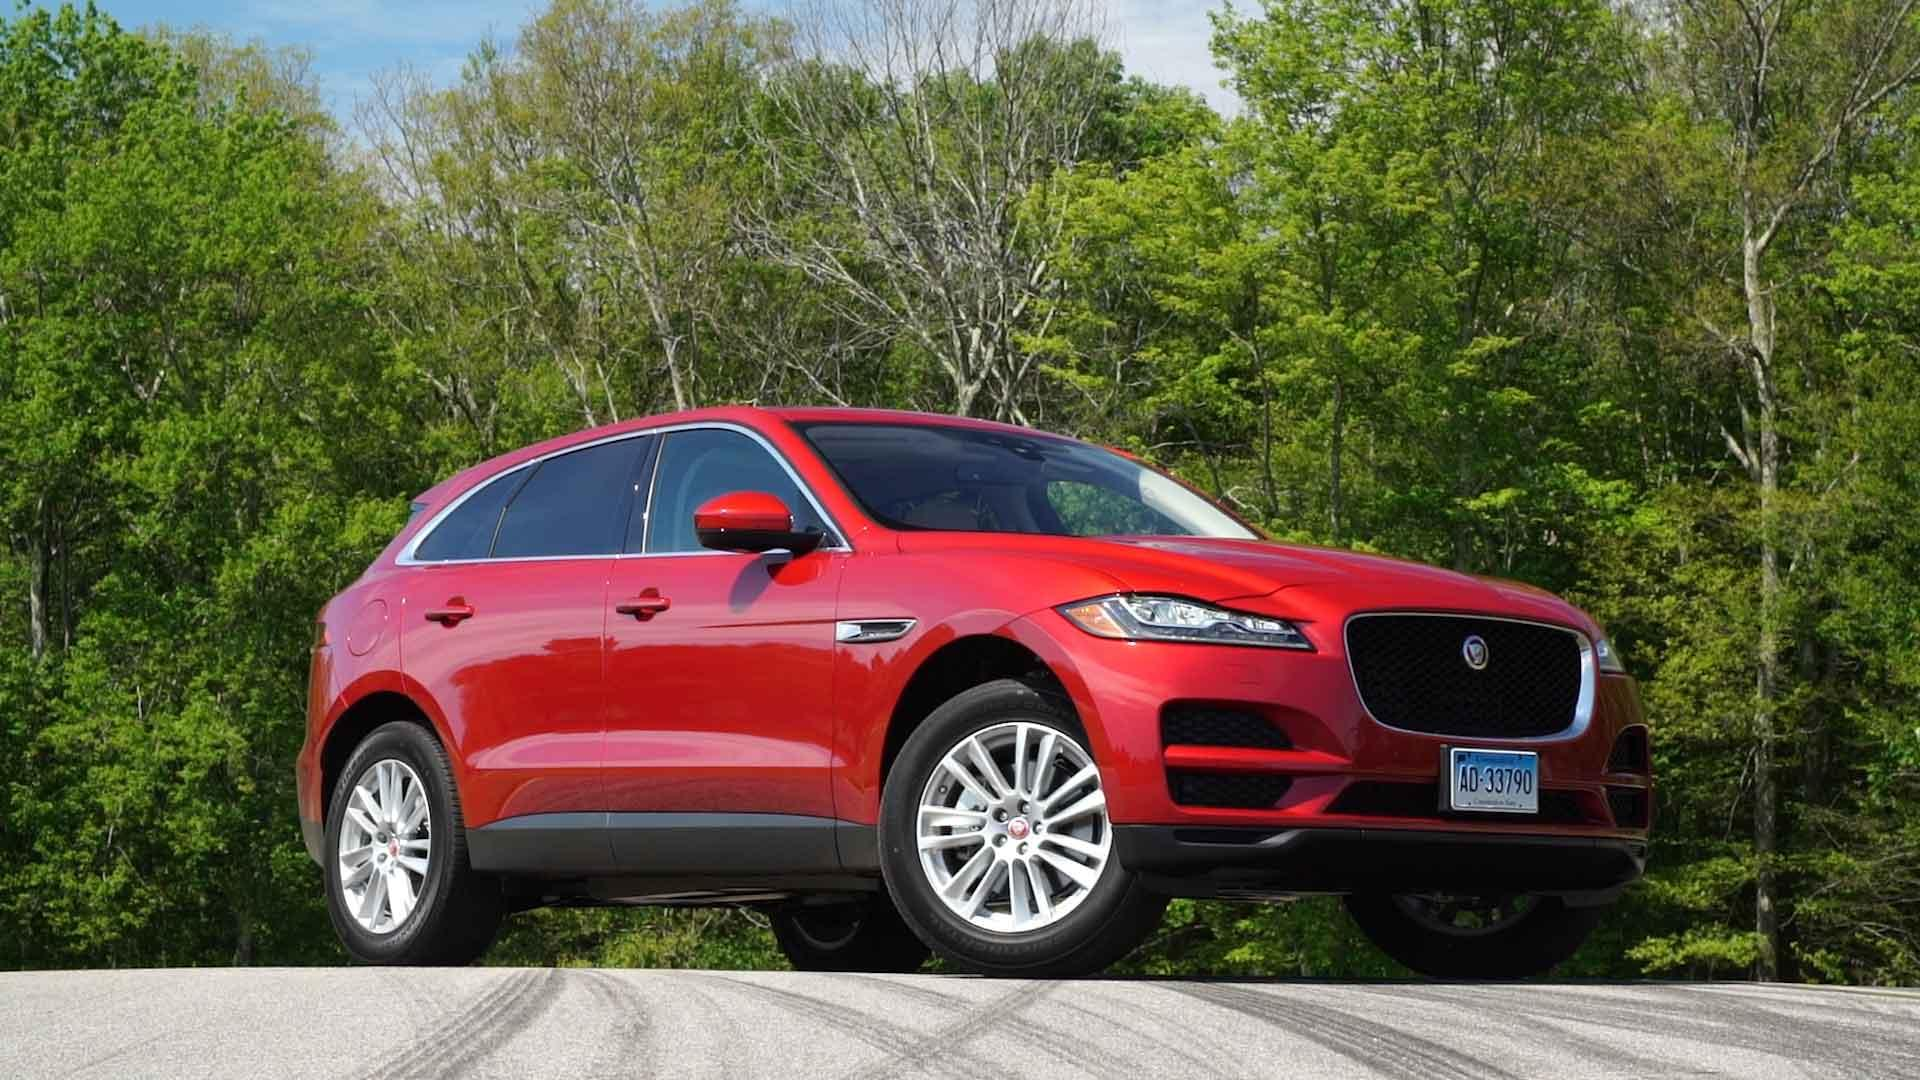 2017 jaguar f pace review consumer reports. Black Bedroom Furniture Sets. Home Design Ideas